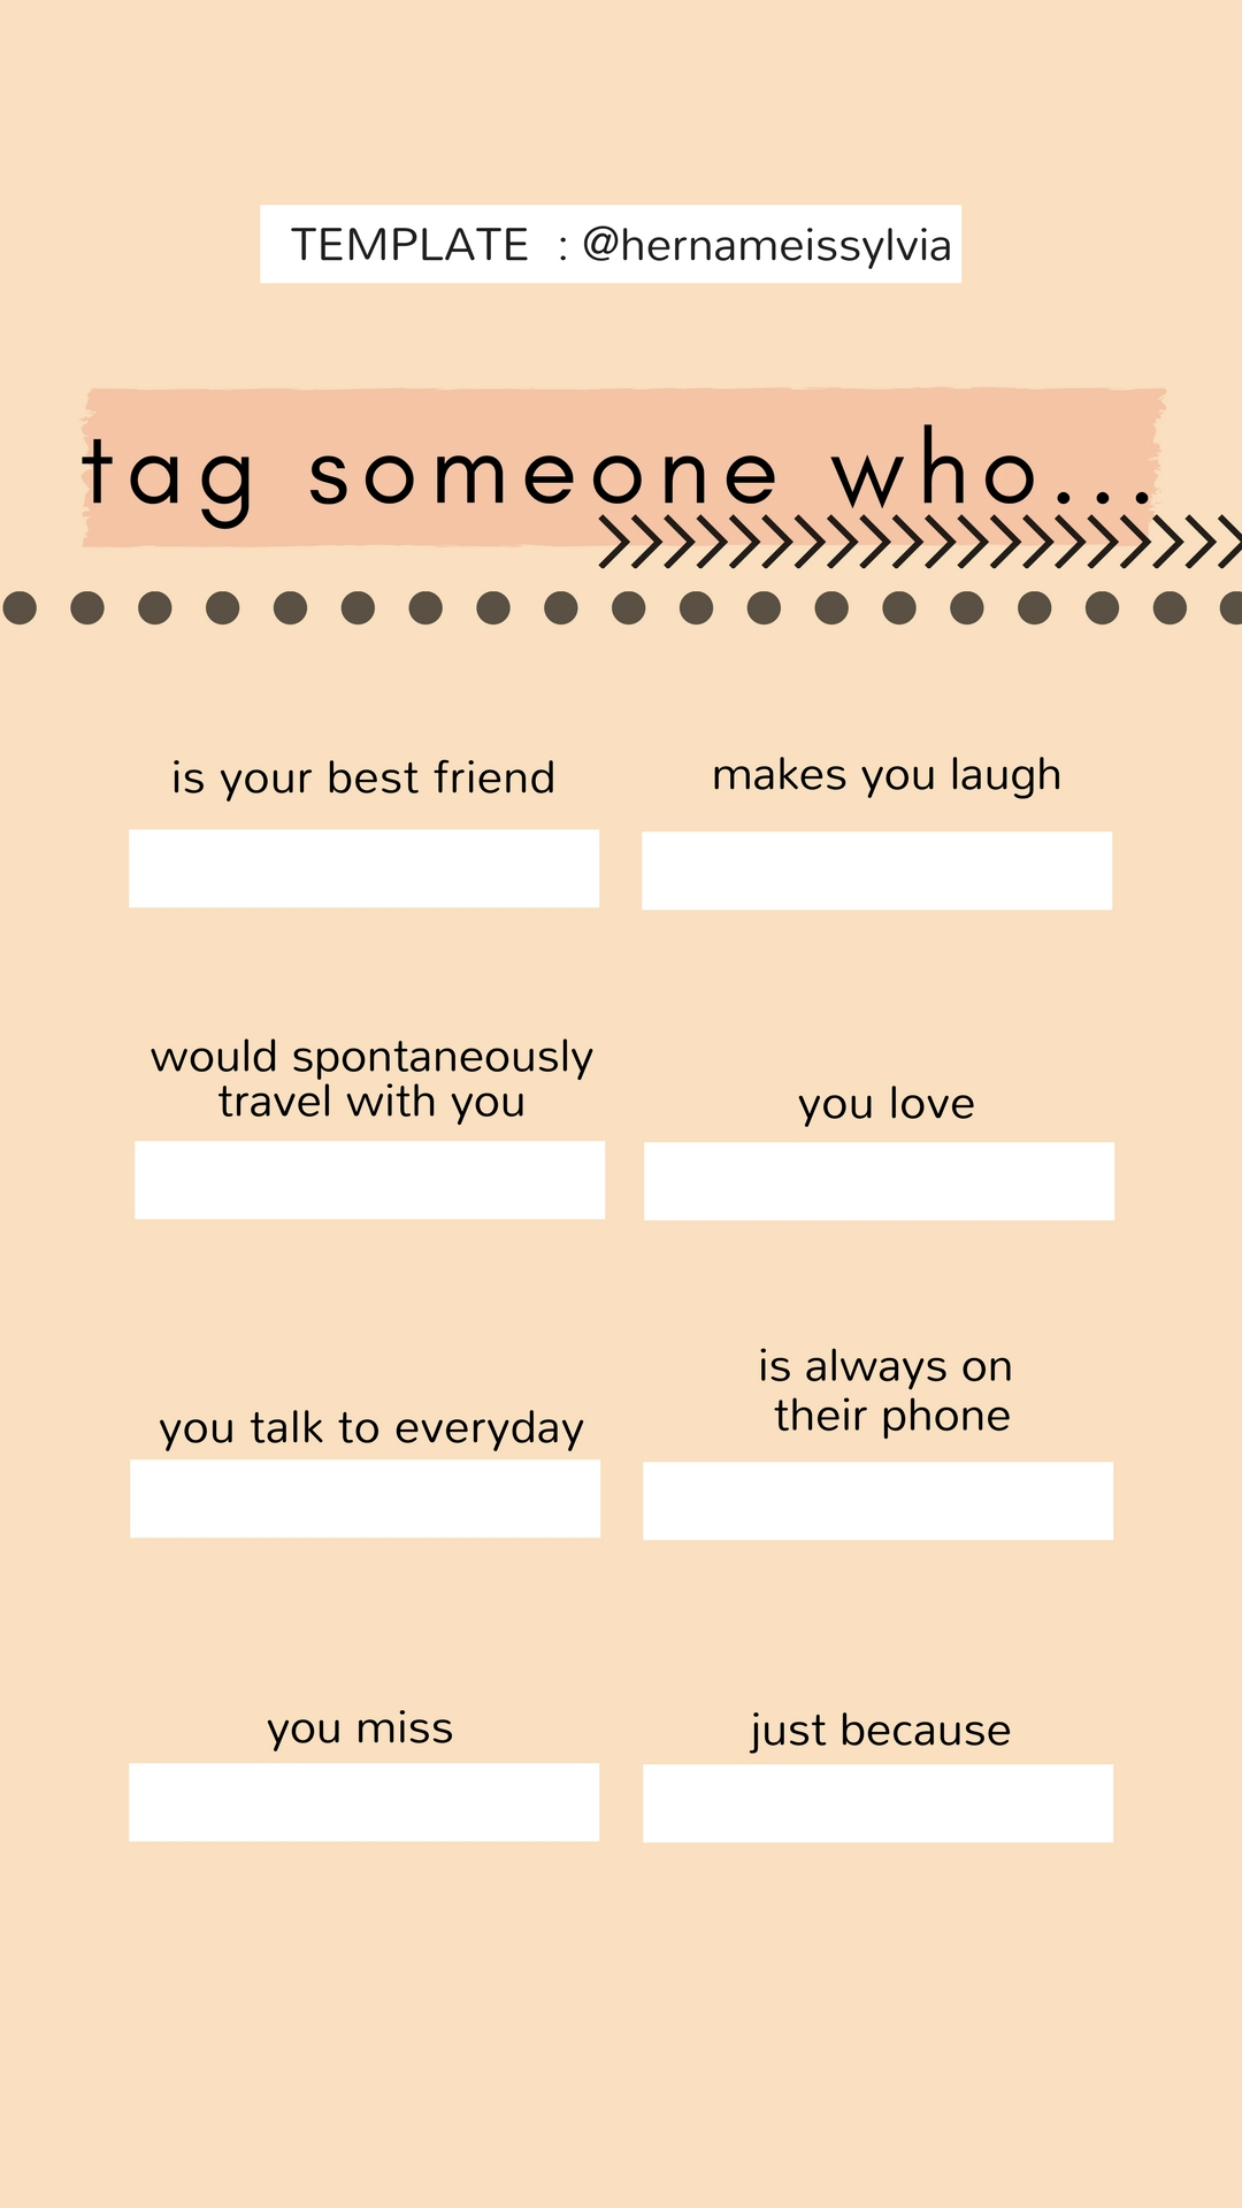 Instagram Template Tag Someone Who Instagram Story Questions Snapchat Questions Instagram Template